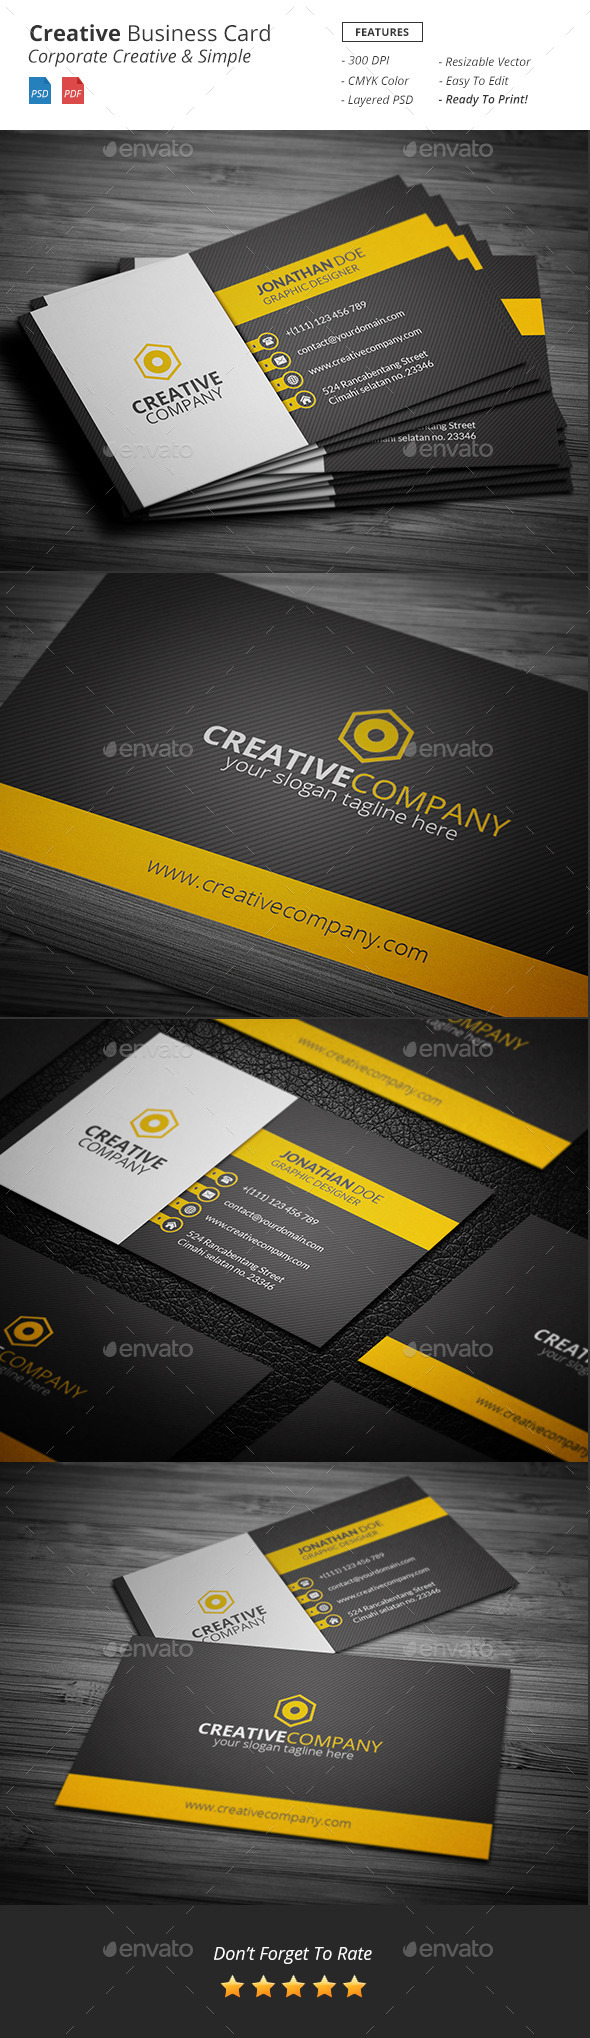 GraphicRiver Creative Business Card Template 11510605